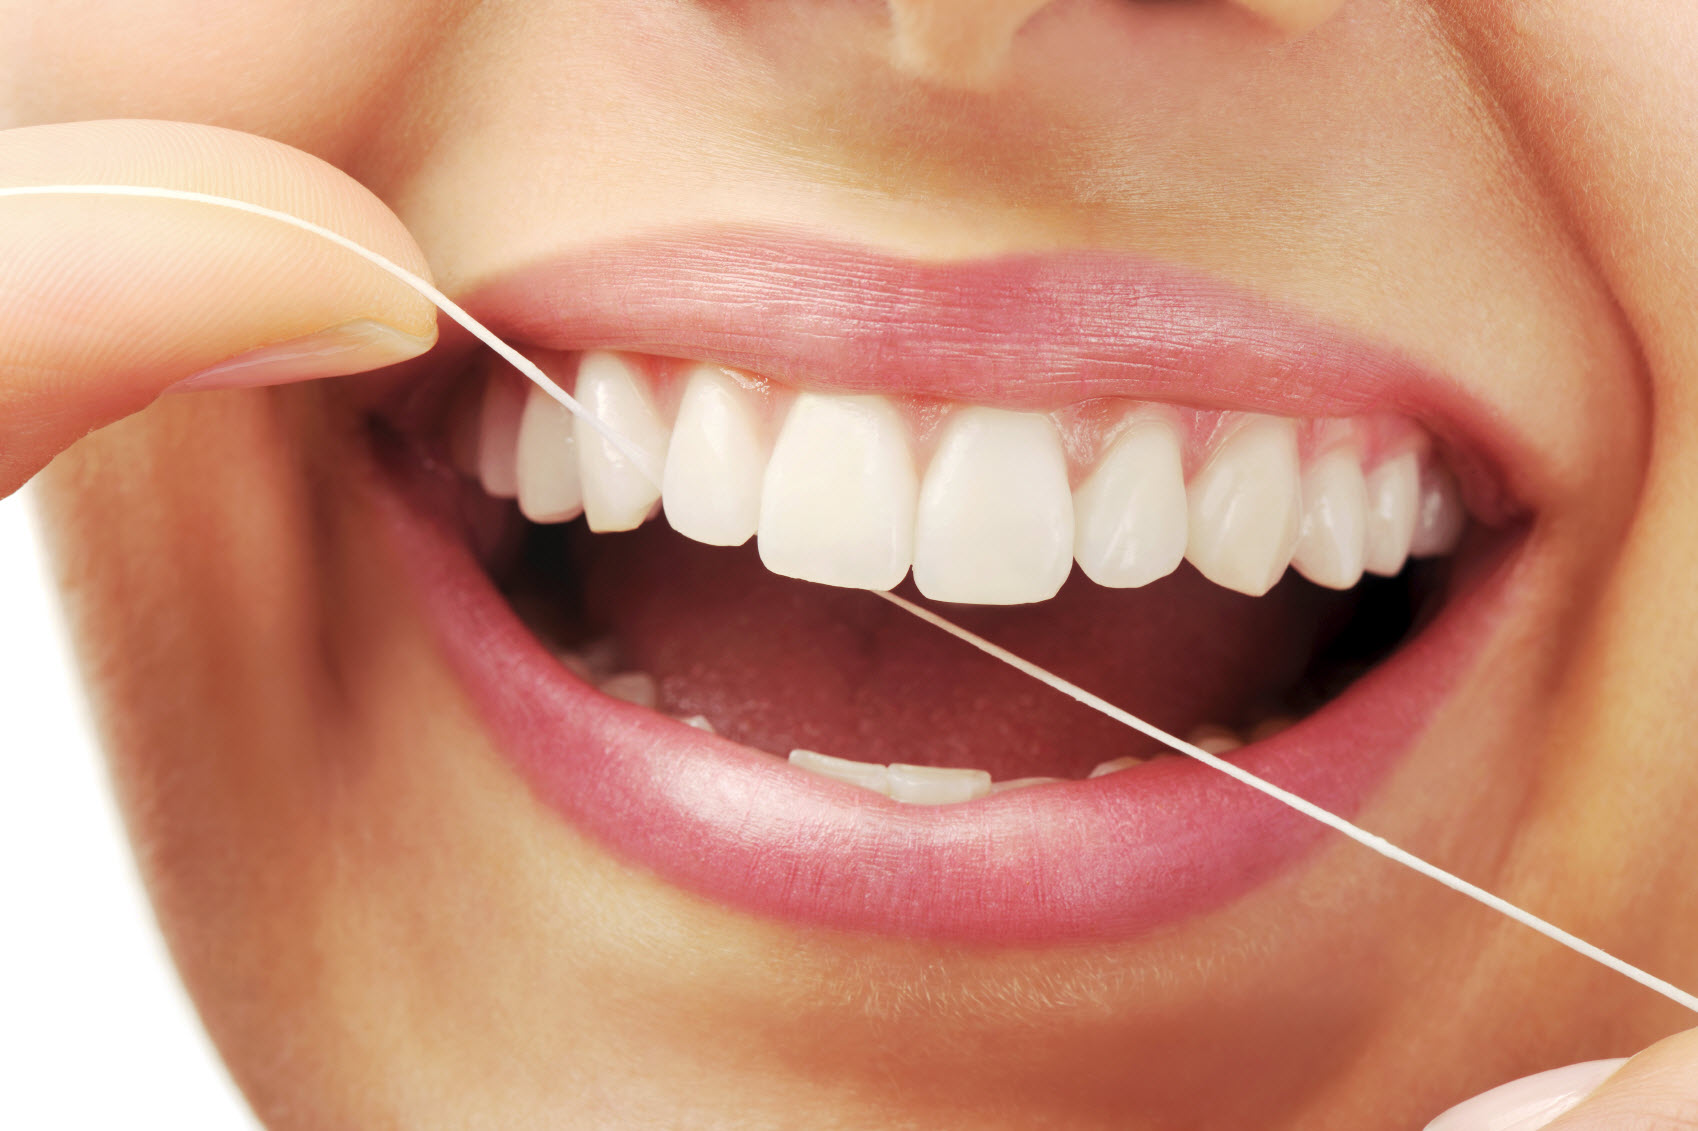 Oral Hygiene: Why it Can Be Simple and at the Same Time Critical?